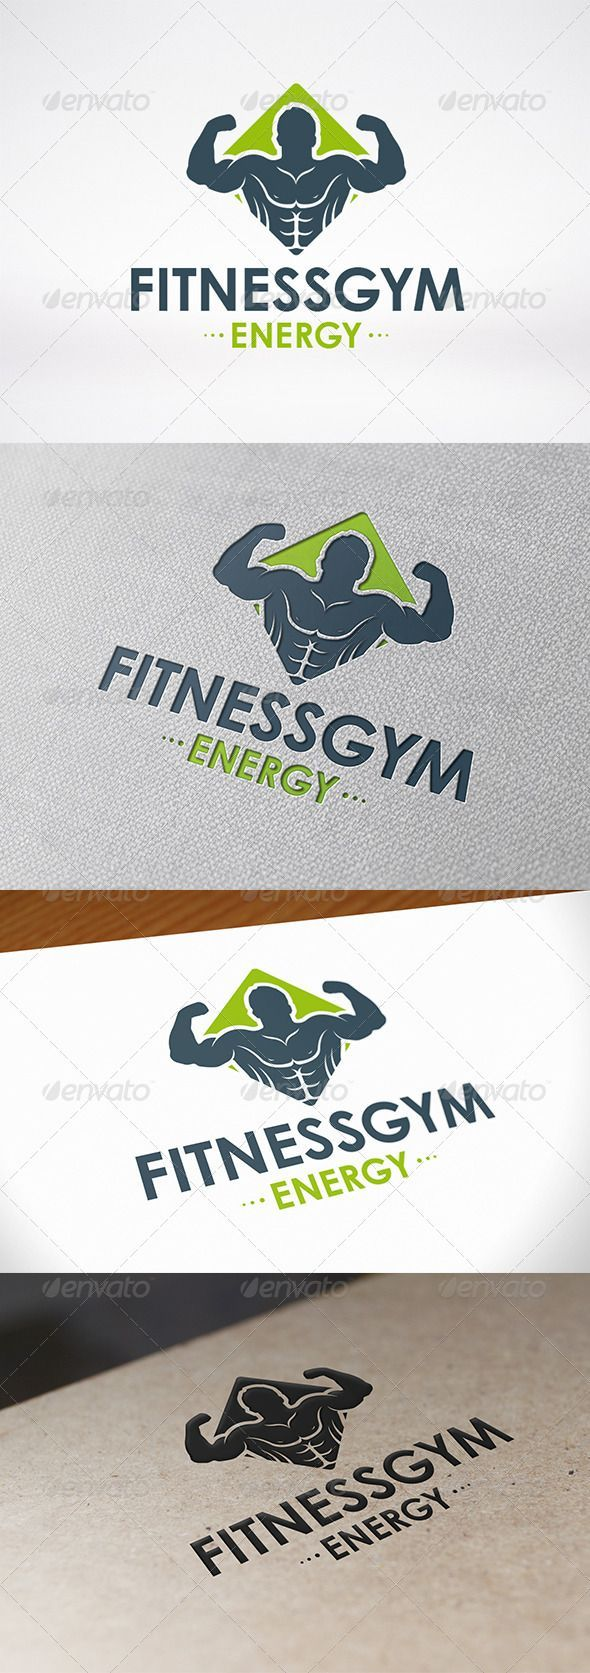 It's important to give the right first impression to your clients with your business logo.